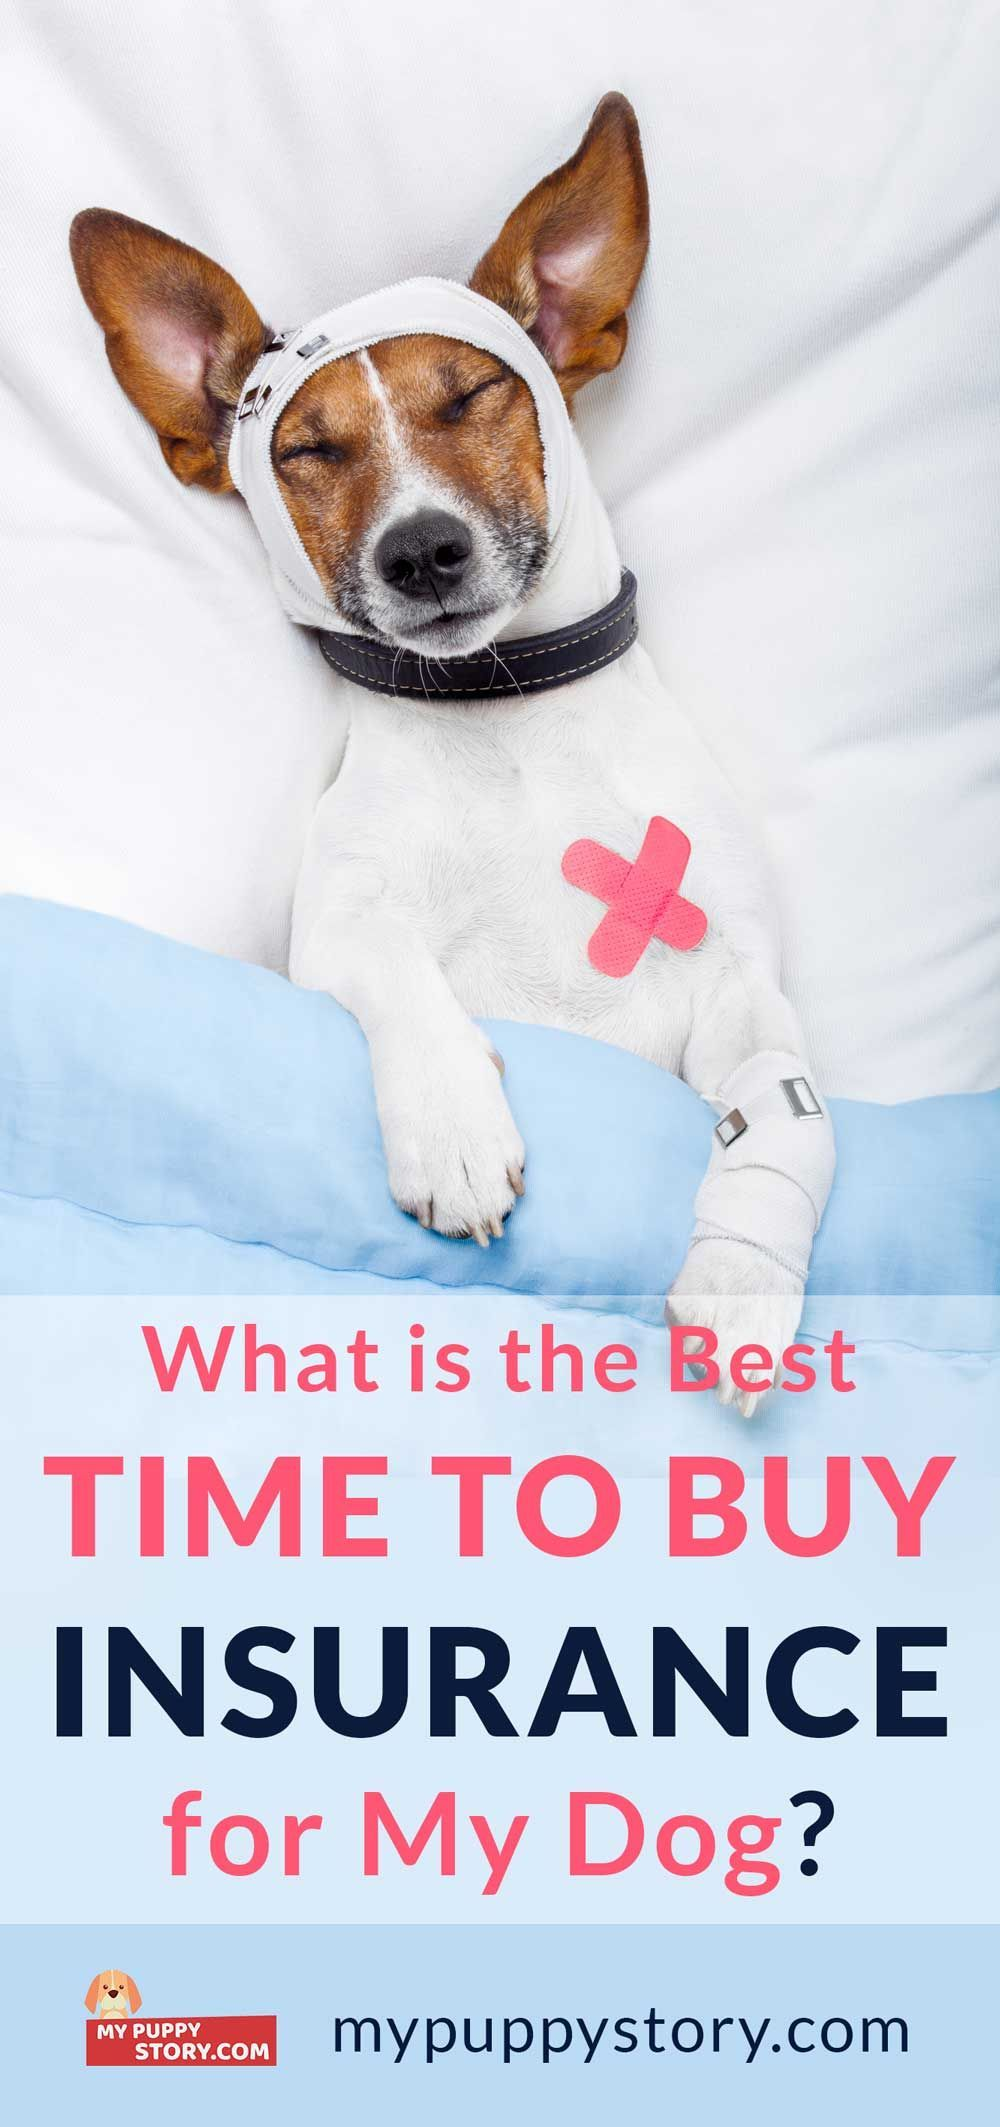 What Should I Know Before Getting Pet Insurance? Dog